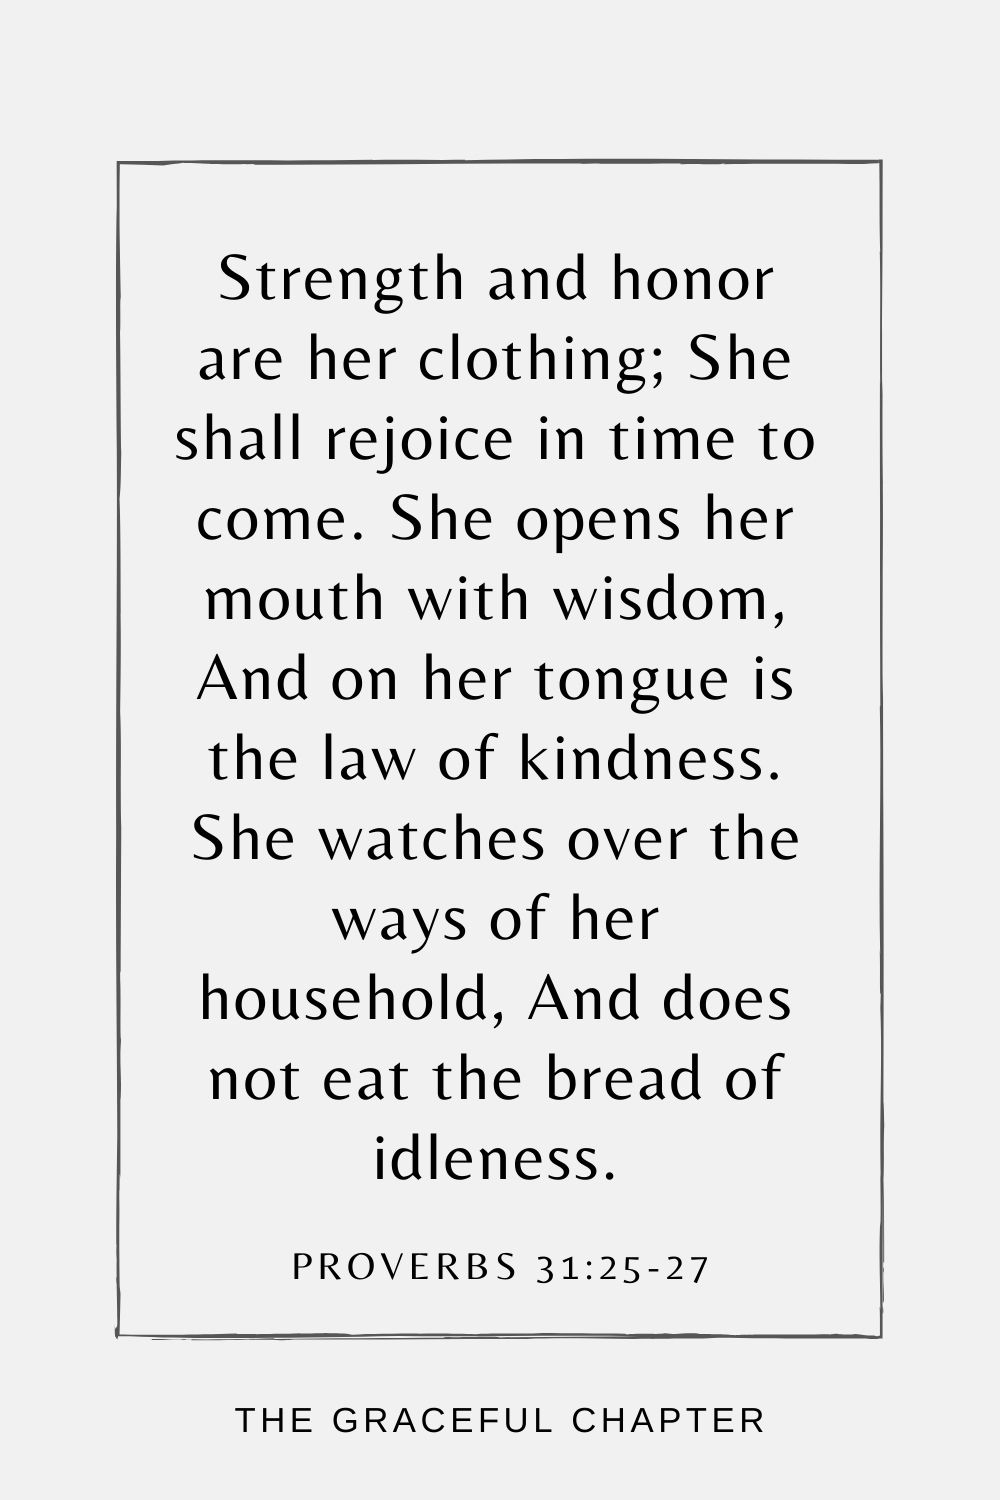 Strength and honor are her clothing; She shall rejoice in time to come. She opens her mouth with wisdom, And on her tongue is the law of kindness. She watches over the ways of her household, And does not eat the bread of idleness. Proverbs 31:25-27